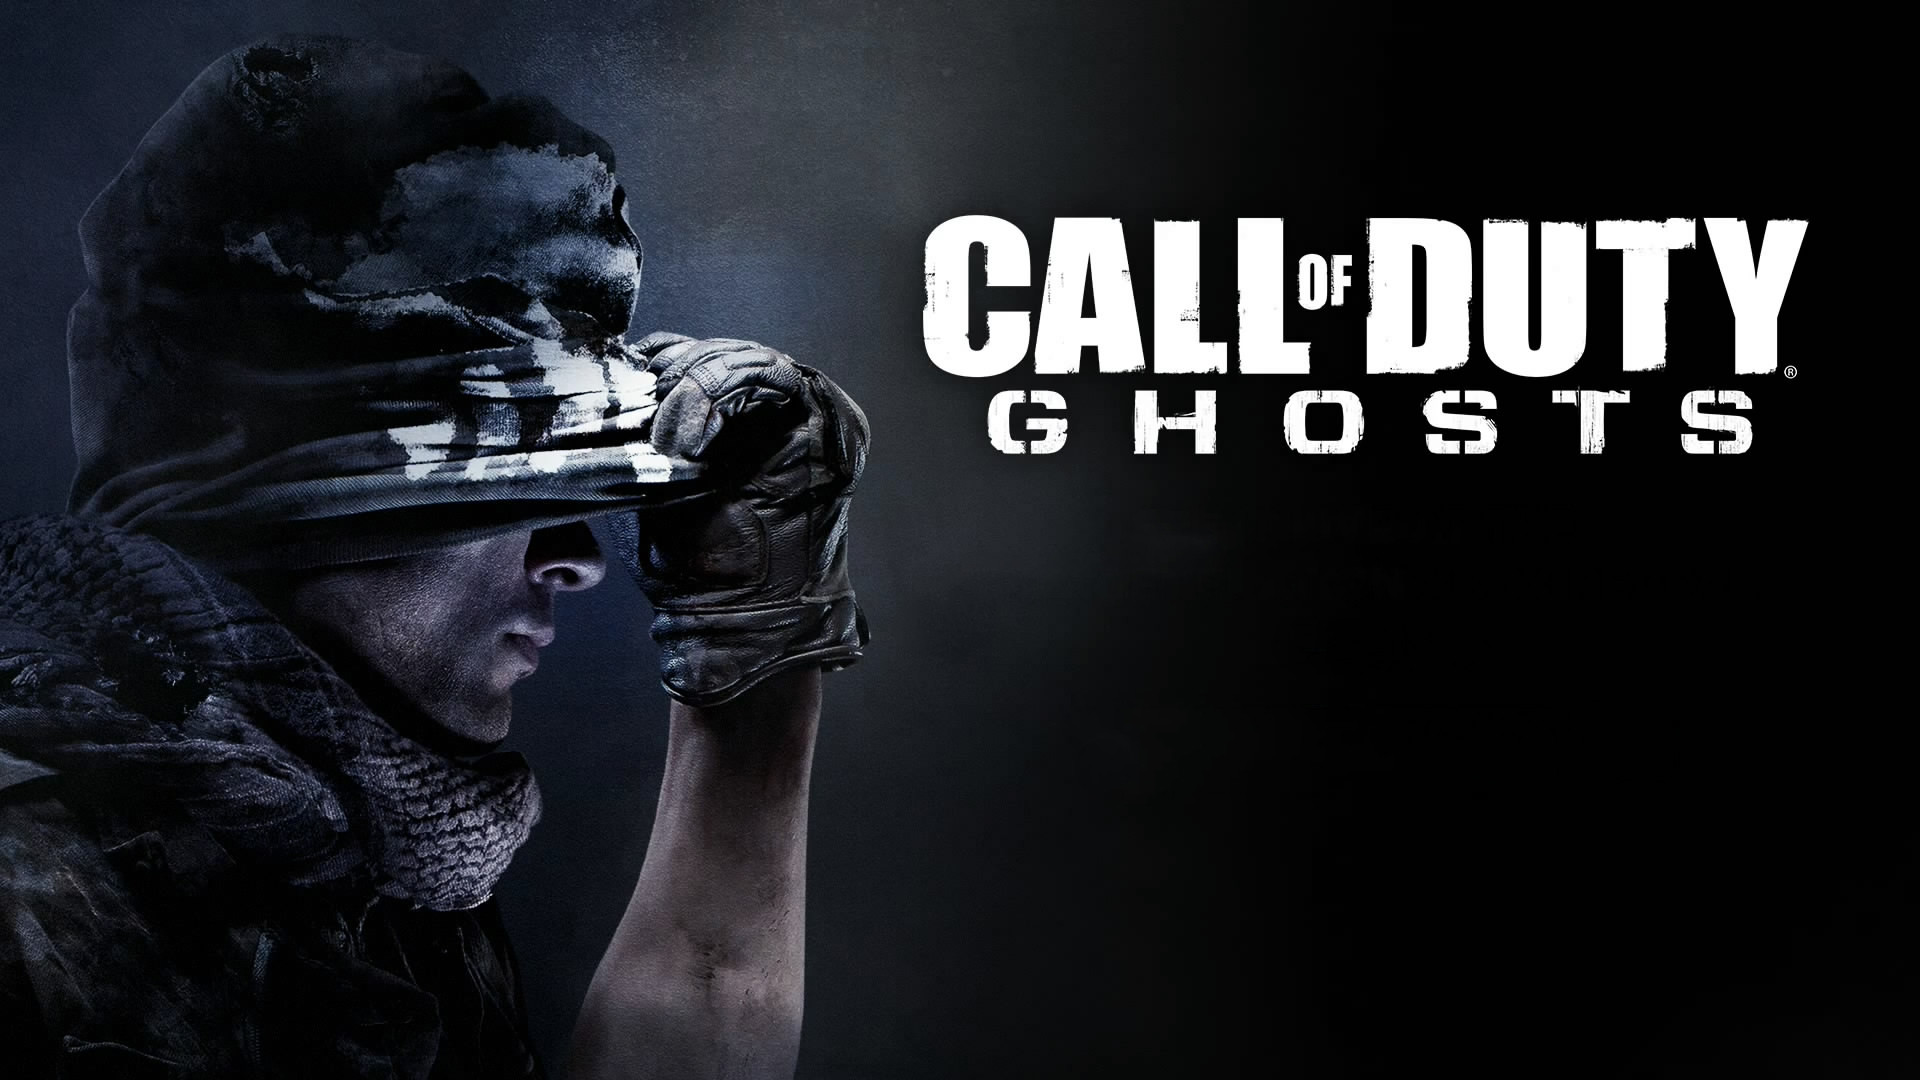 Activision and Infinity Ward's Call of Duty: Ghosts Onslaught Revealed as the First of Four Epic DLC Packs Planned for 2014